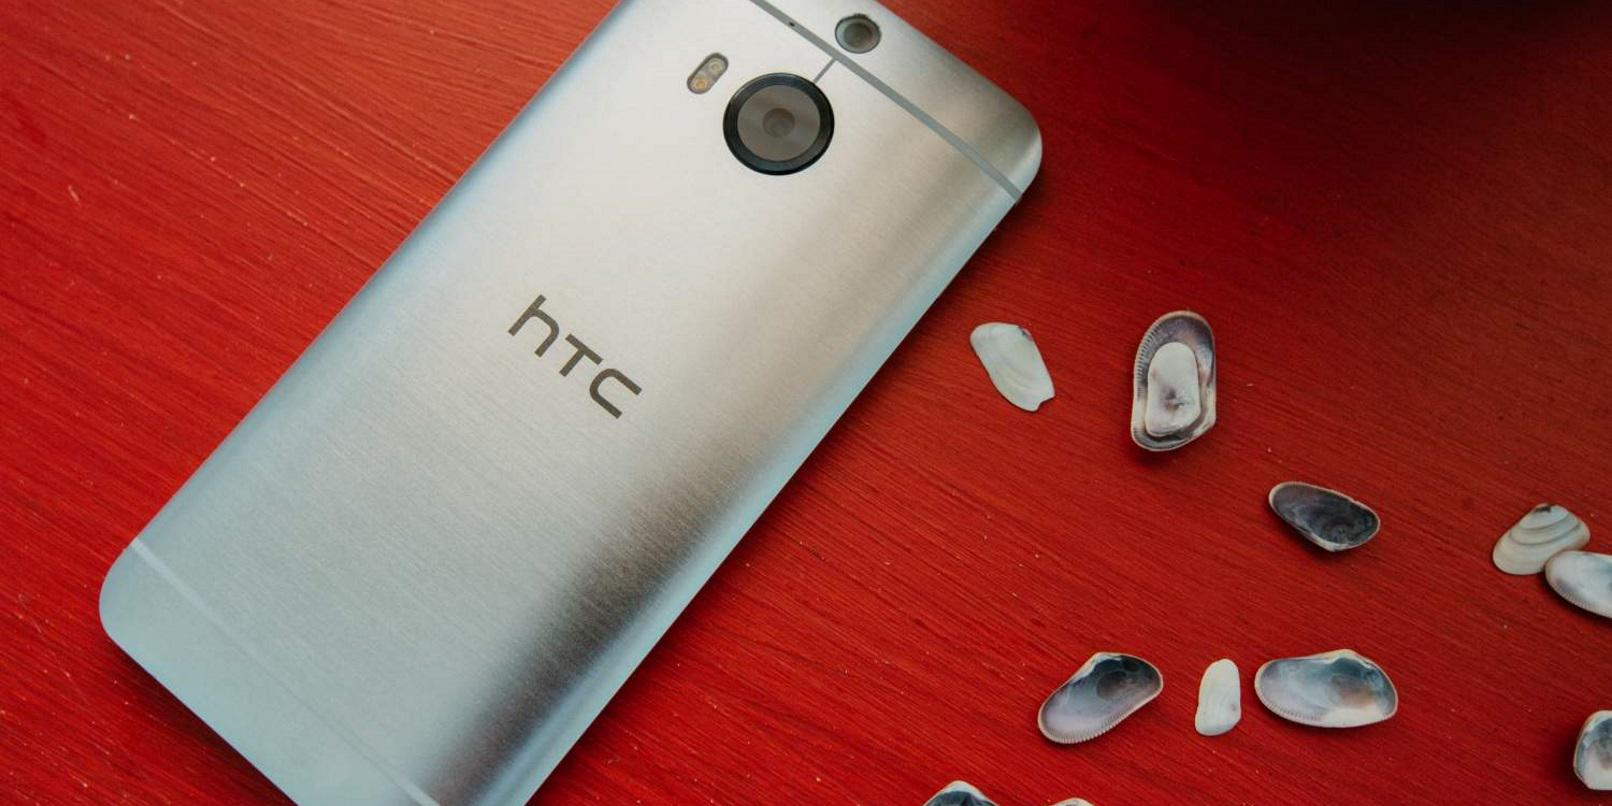 RT @TheNextWeb: Dear HTC: Stop making the same phone over and over http://t.co/oD93YMkQuU http://t.co/8BRsObbqDe